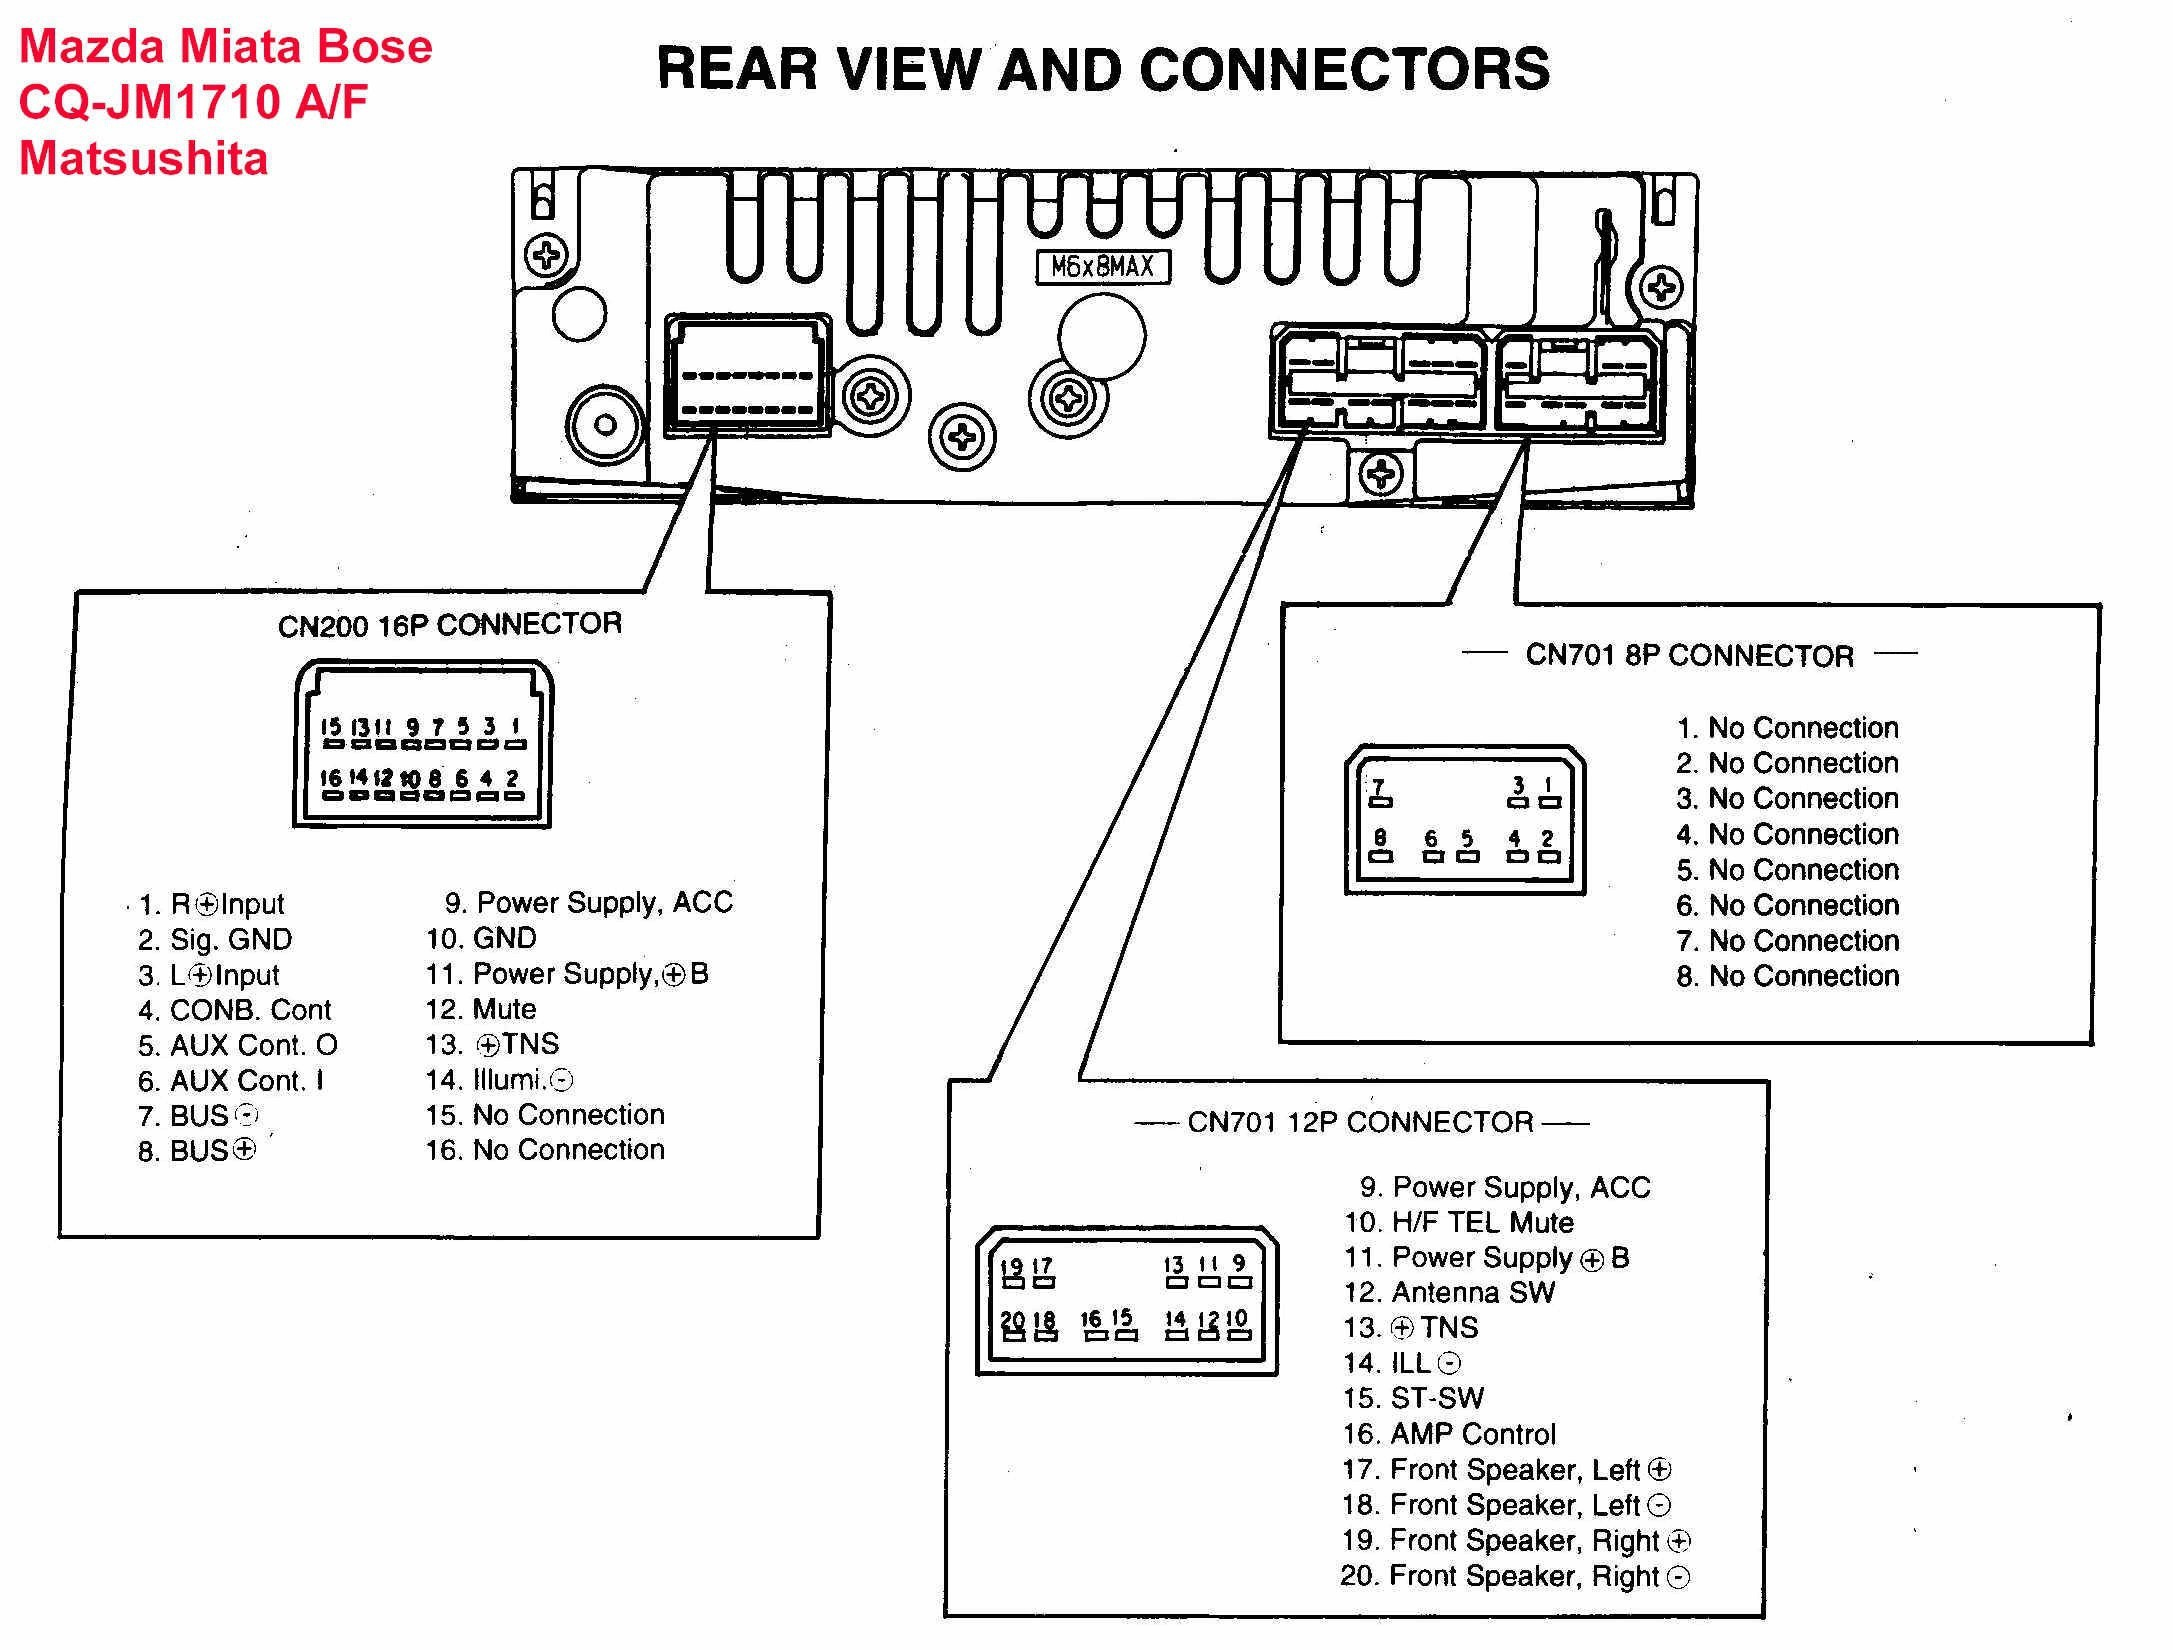 Wiring Diagrams for Pioneer Car Stereos New Stereo Wiring Diagram Diagram Of Wiring Diagrams for Pioneer Car Stereos